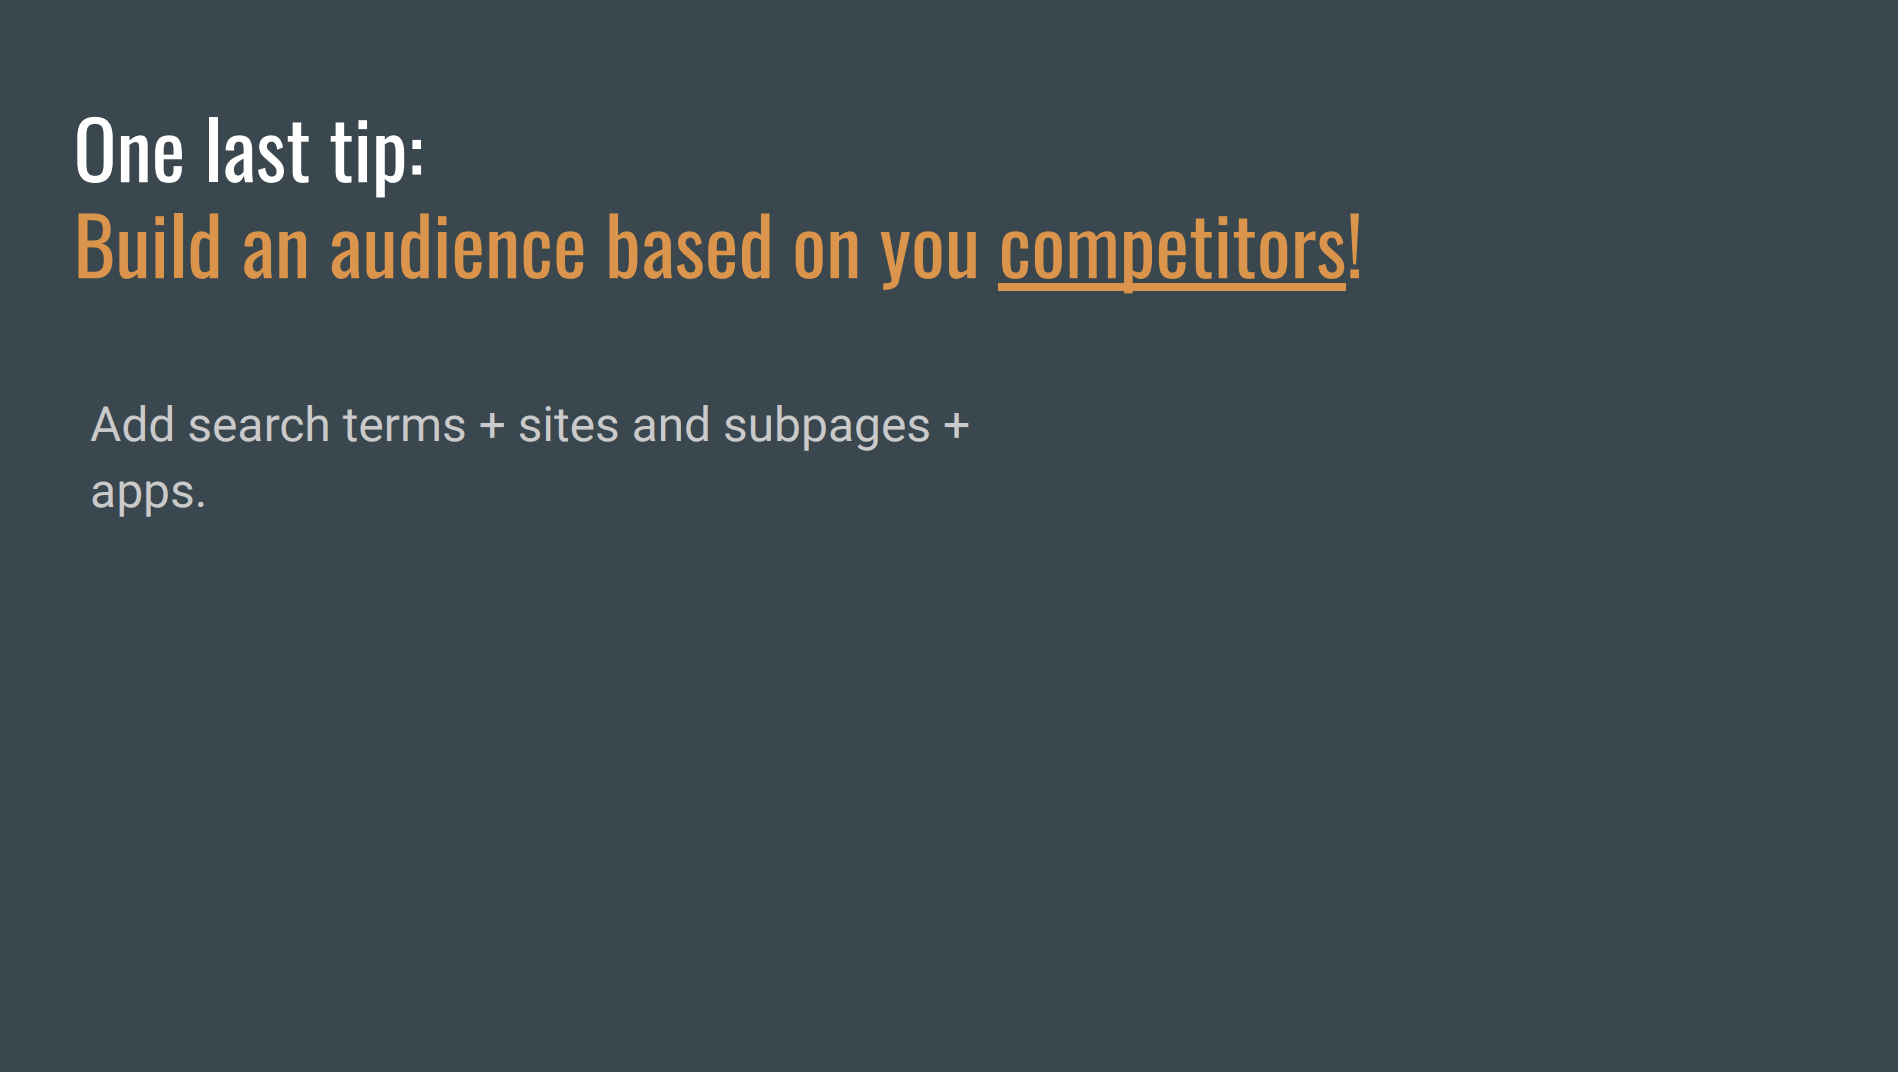 Audiences built from your competitor's clients